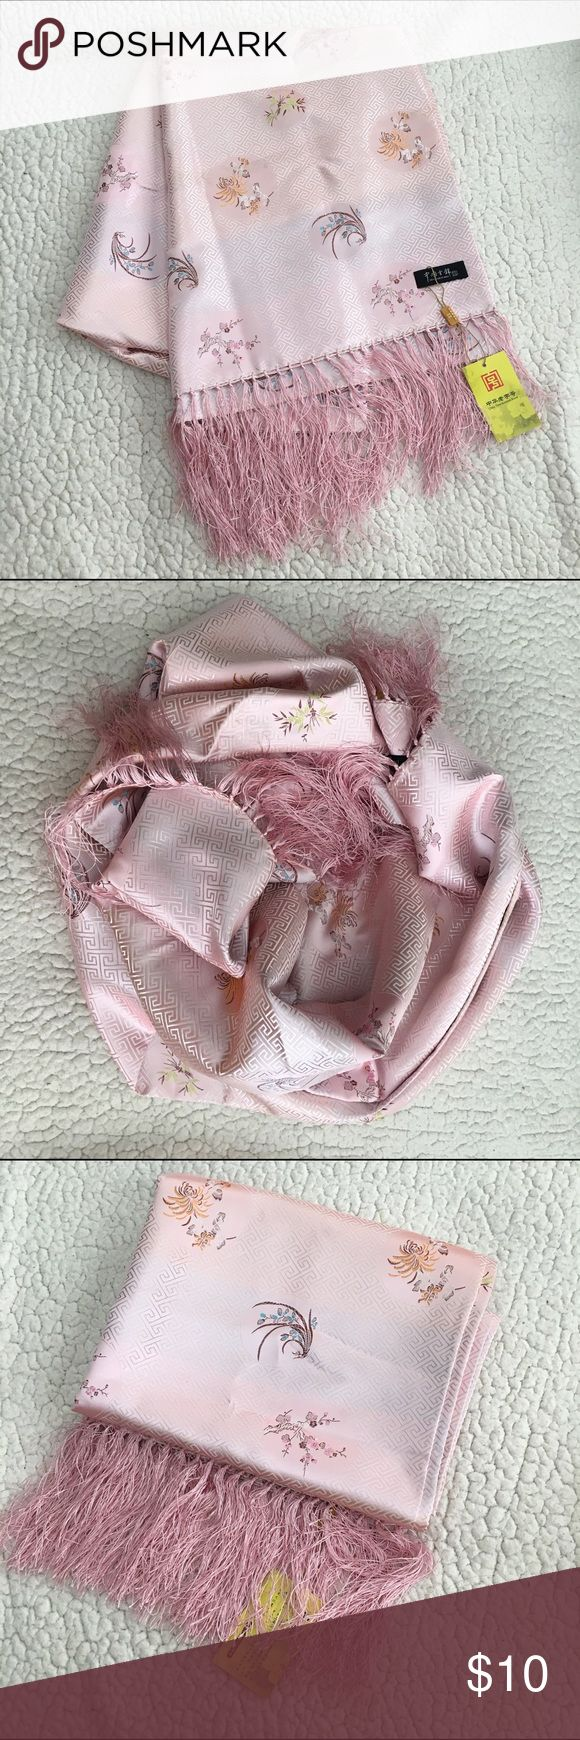 NEW Asian scarf Brand new with tags • Asian scarf with thin tassel fringe  • light pink with a shimmery feel • long and thick • floral print throughout • flaw- some dirt spots and lines from being stored in a box but can be washed out • could even double as a table runner ;) Accessories Scarves & Wraps